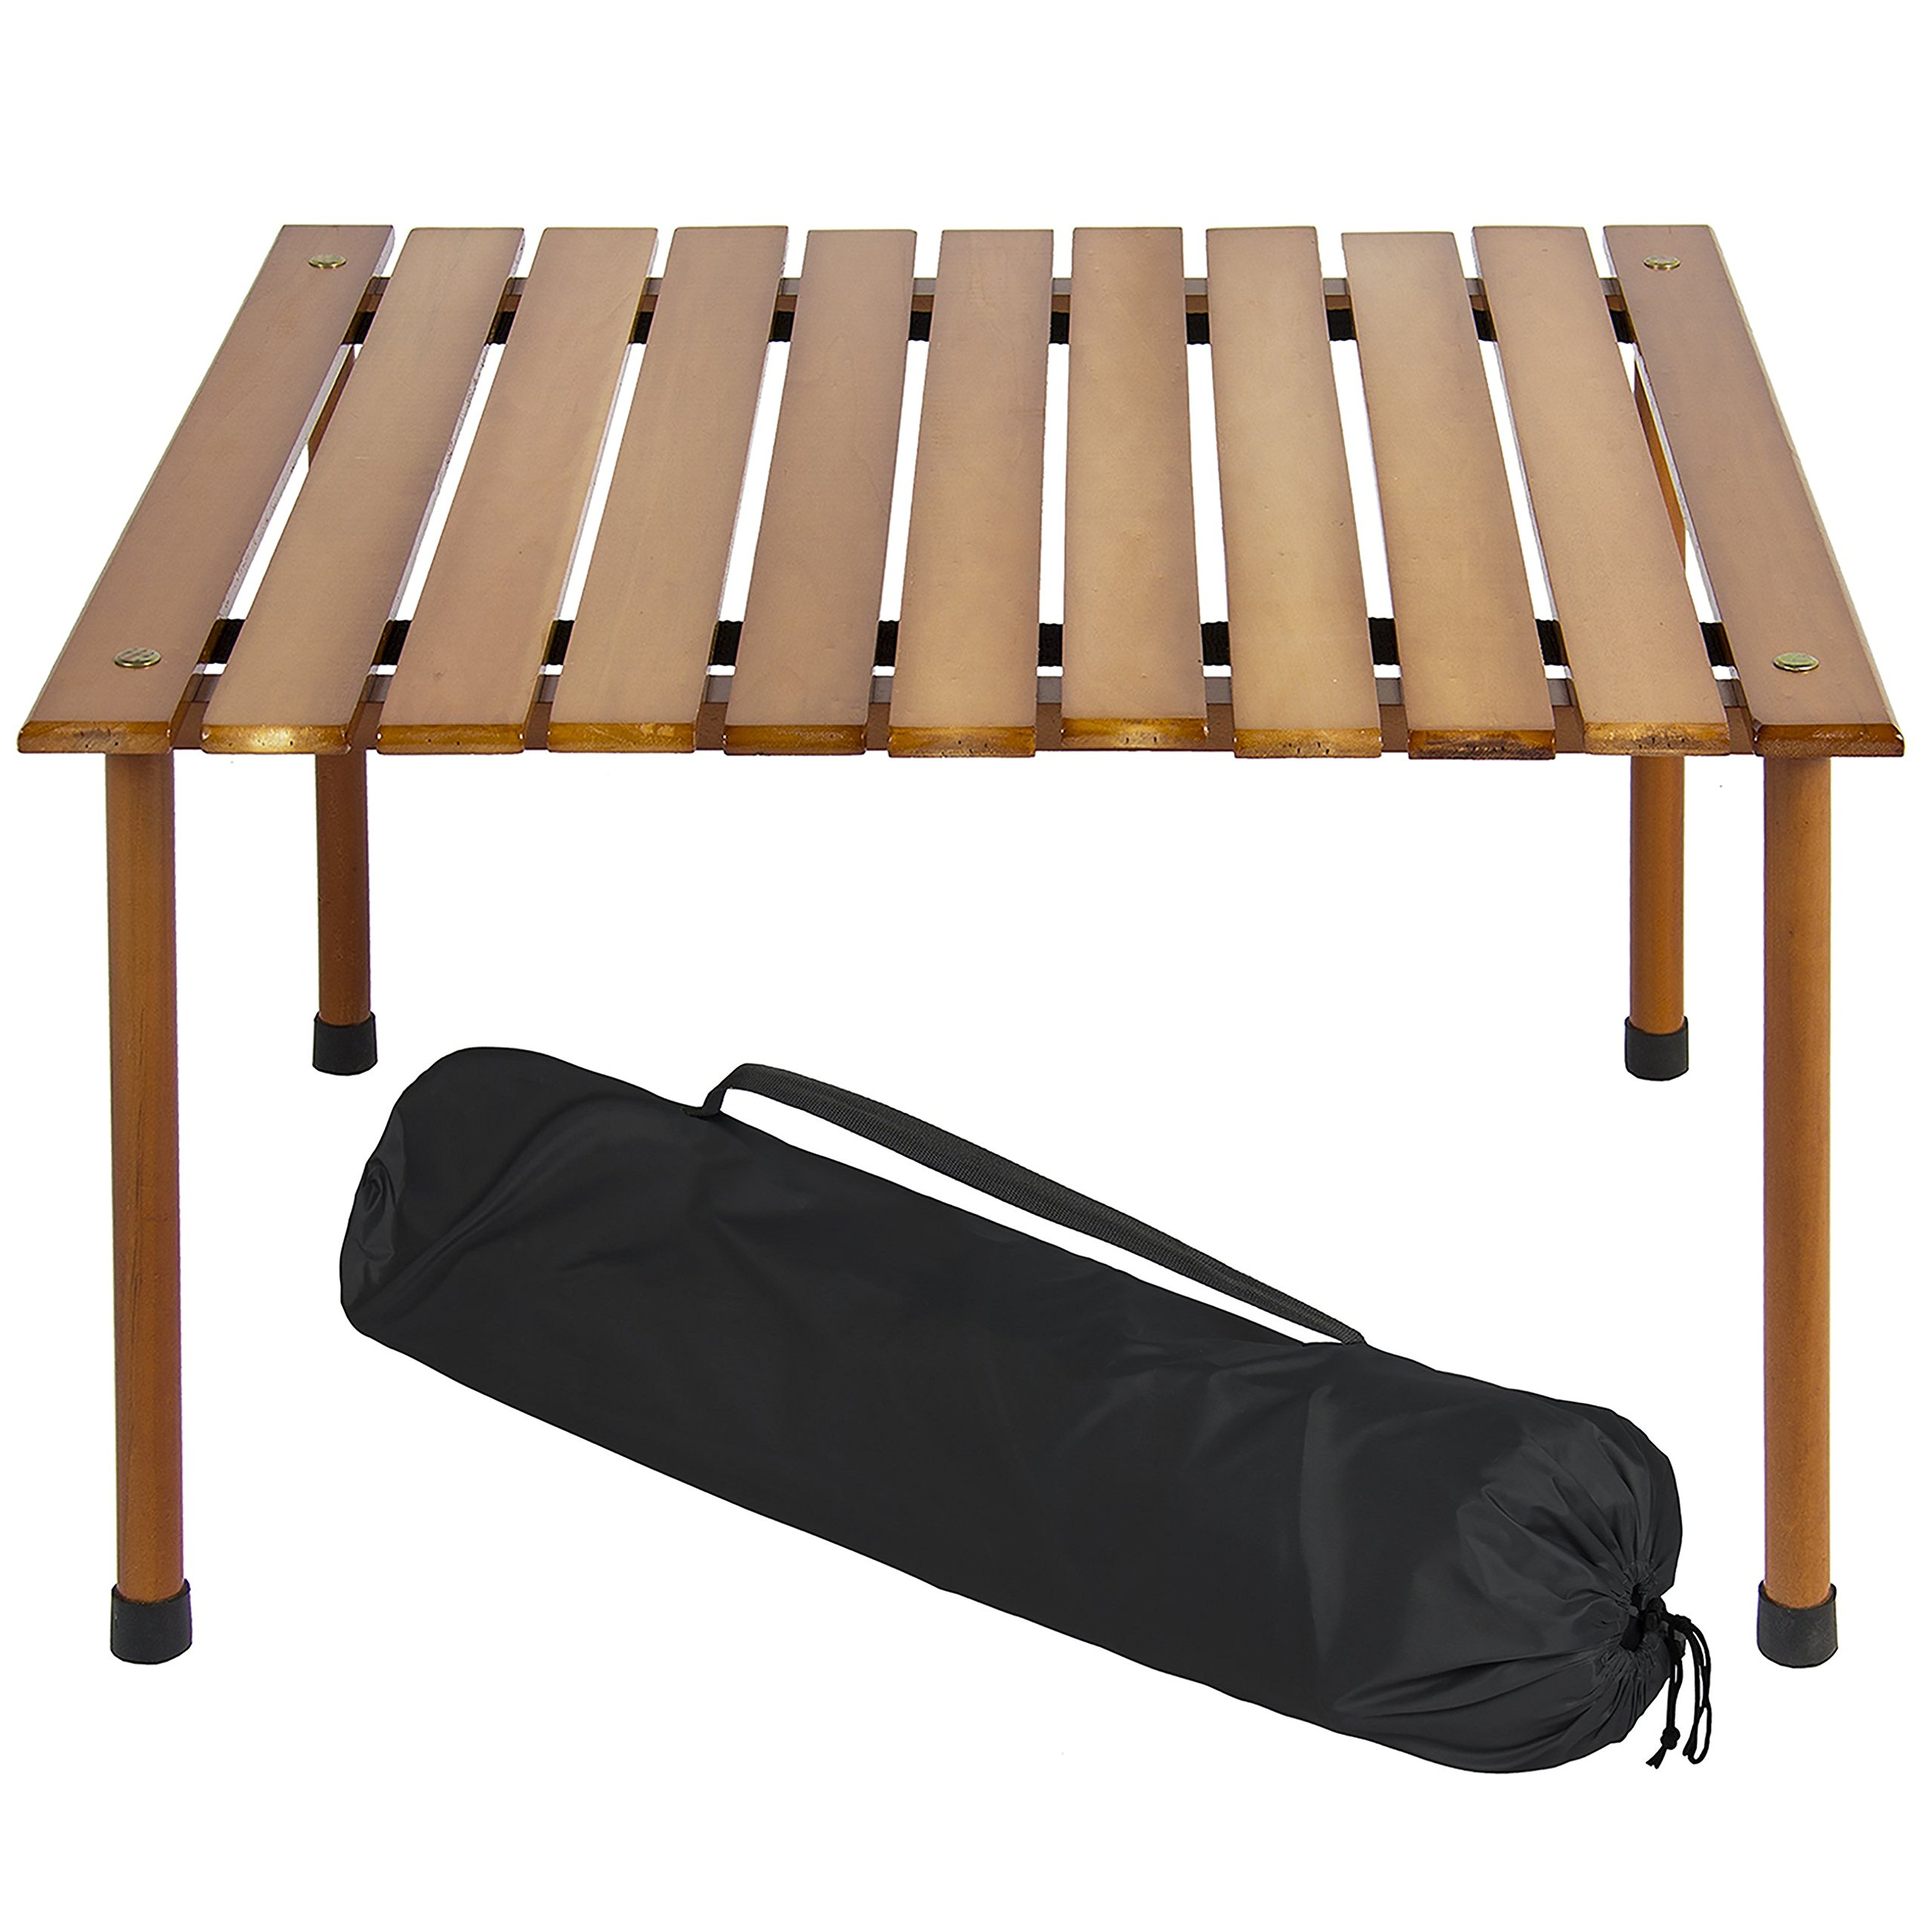 Best Choice Products Foldable Portable Wooden Table for Picnic, Camping, Beach, Patio Furniture with Carrying Case - Brown